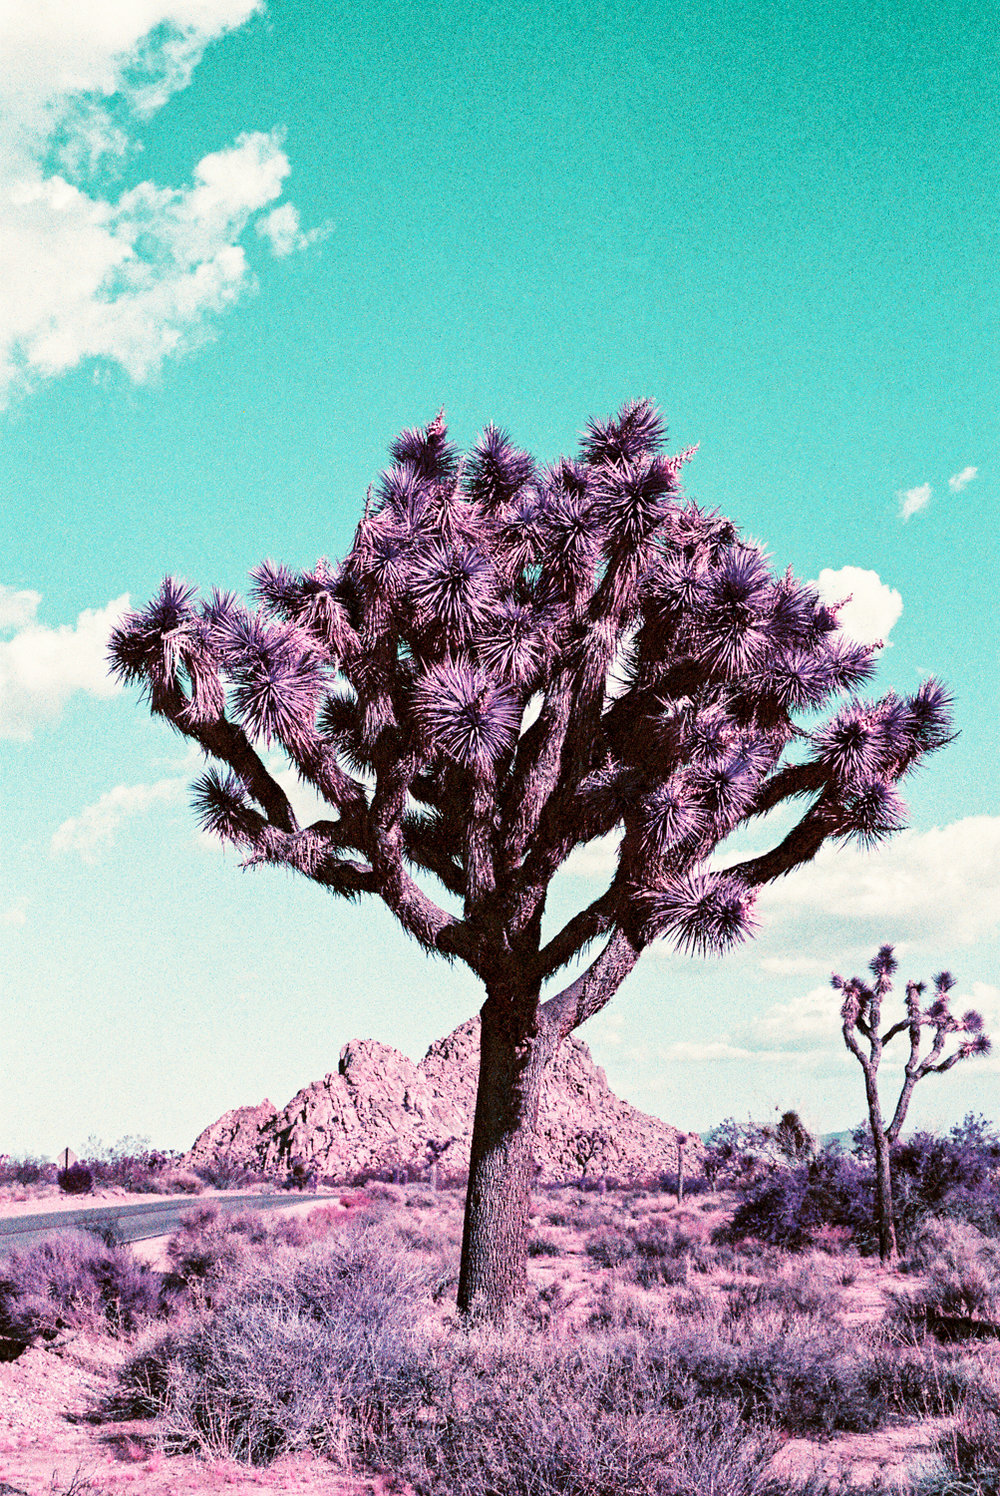 35mm - Nikon F100 - Lomography PurpleChrome